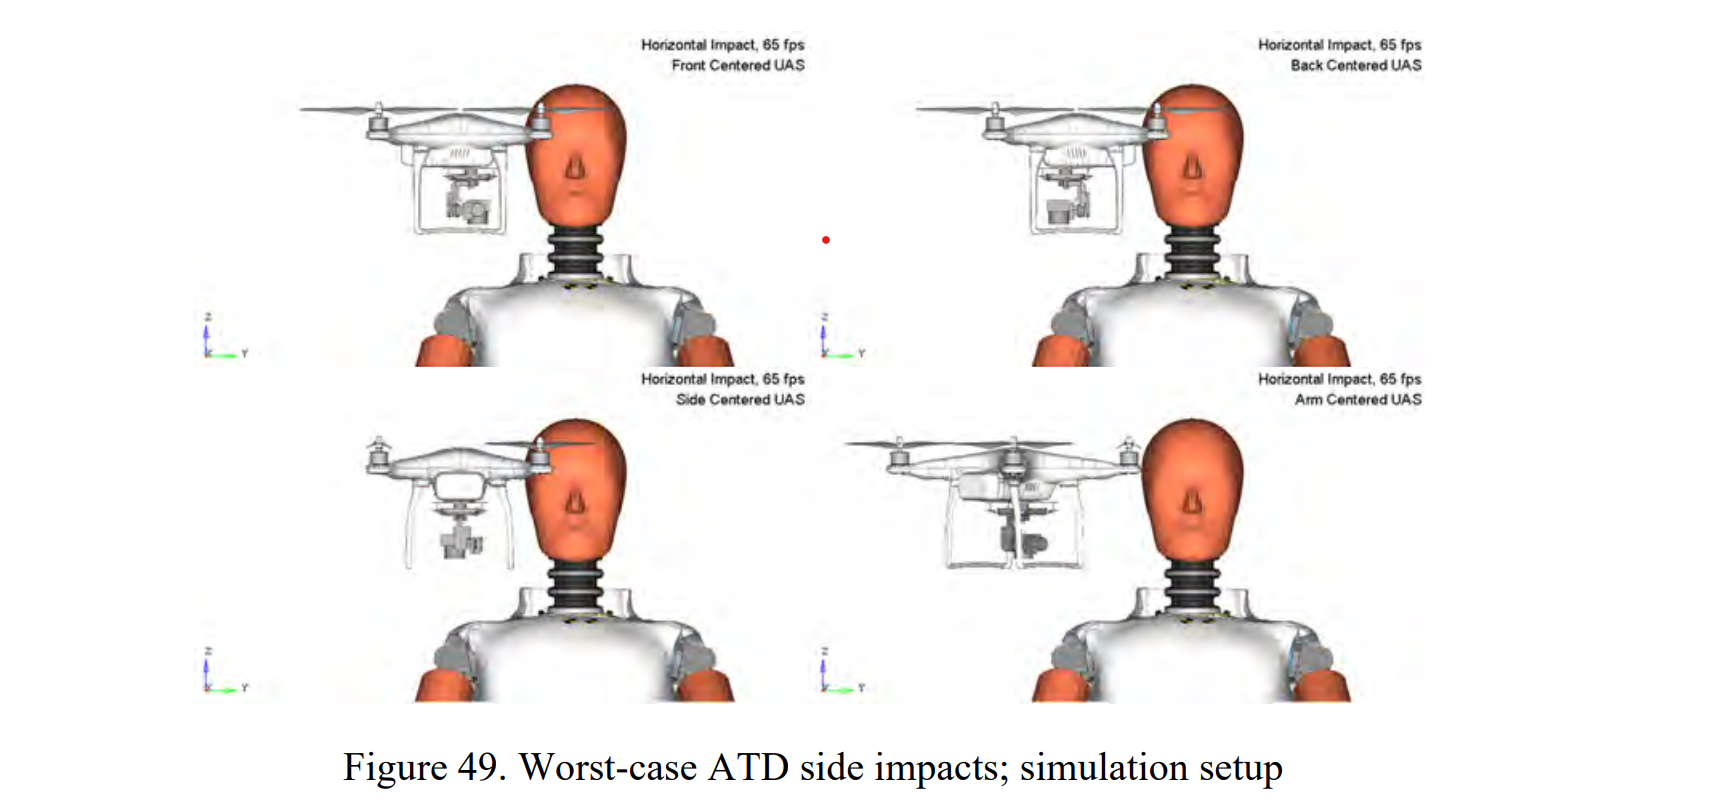 Researchers crashed drones into test dummies, and here's what they found